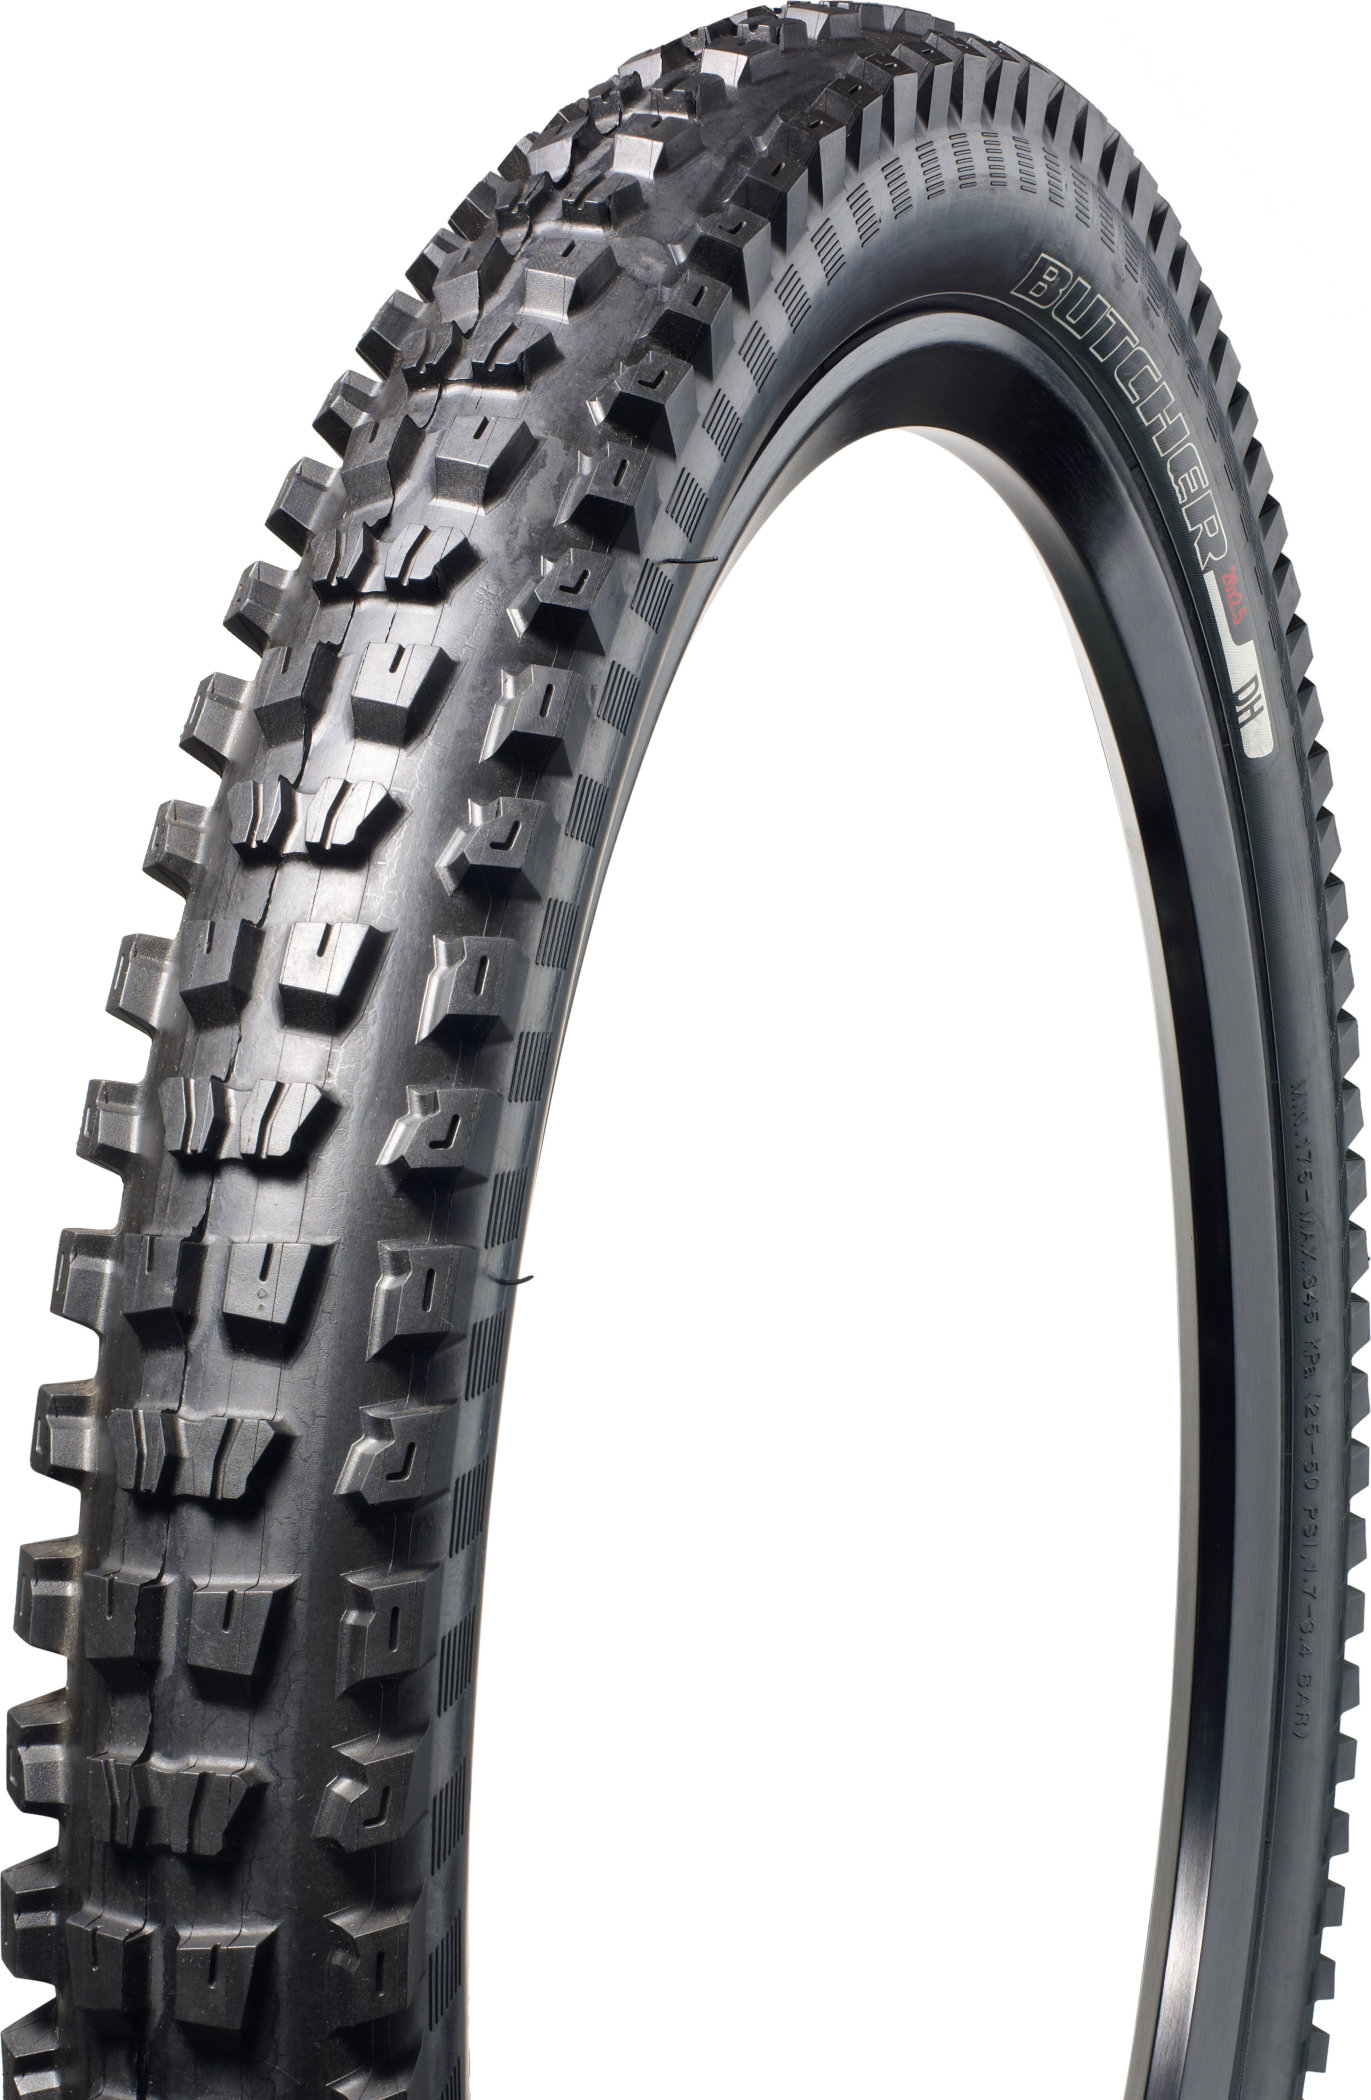 SPECIALIZED BUTCHER DH TIRE 26X2.3 - SPECIALIZED BUTCHER DH TIRE 26X2.3